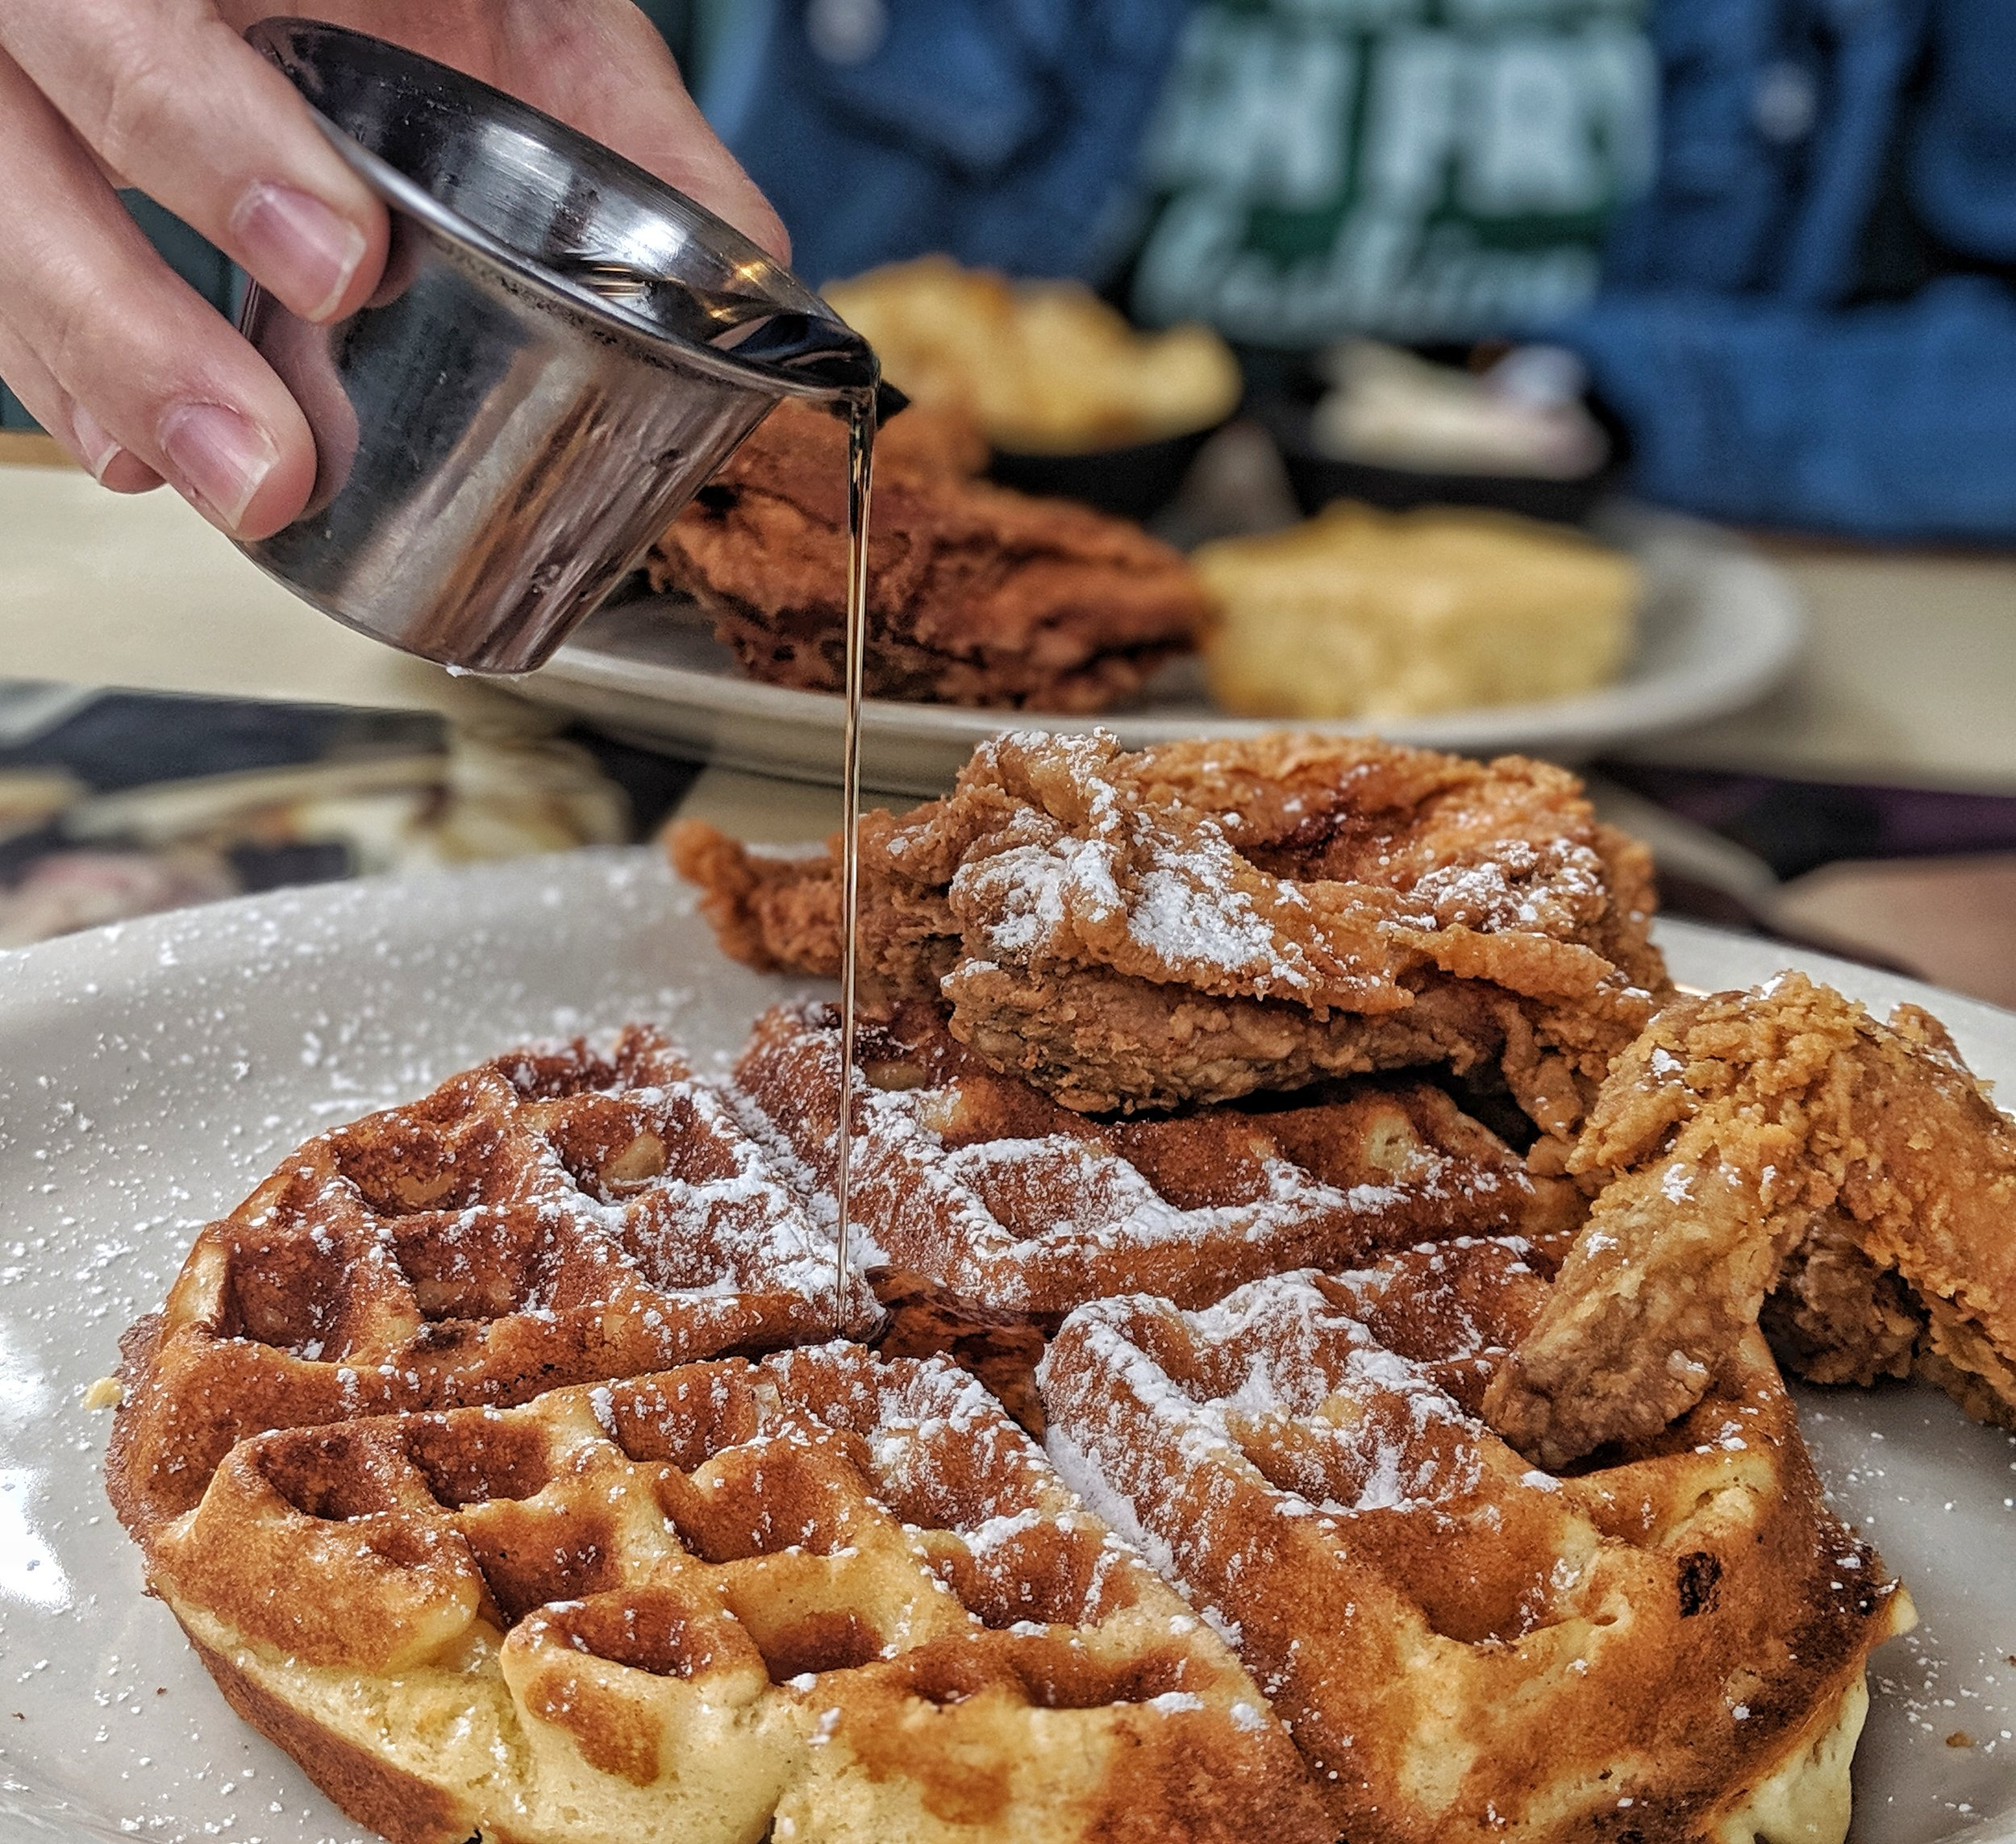 - Chicken & Waffles from The Cozy Corner Soul Food Diner